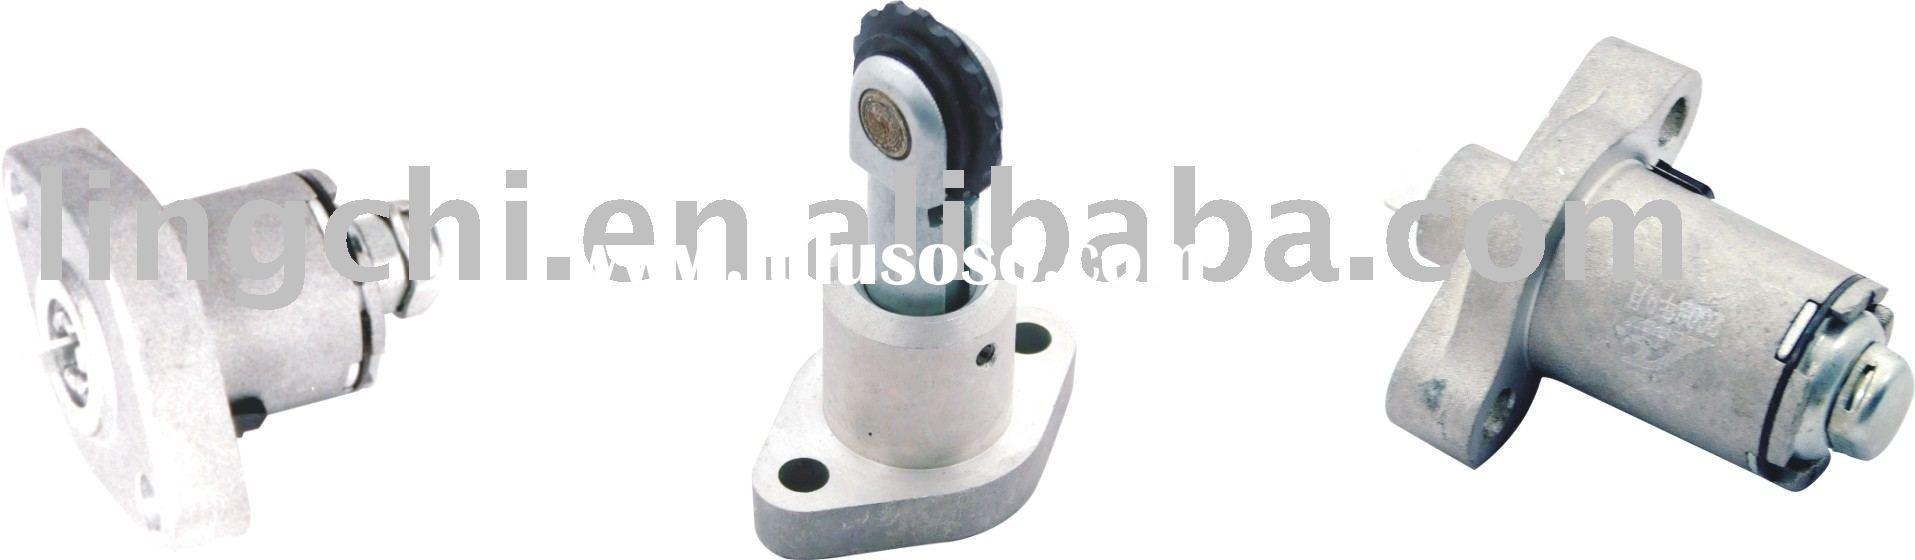 Industrial Chain Tensioner : Bicycle chain tensioner installation